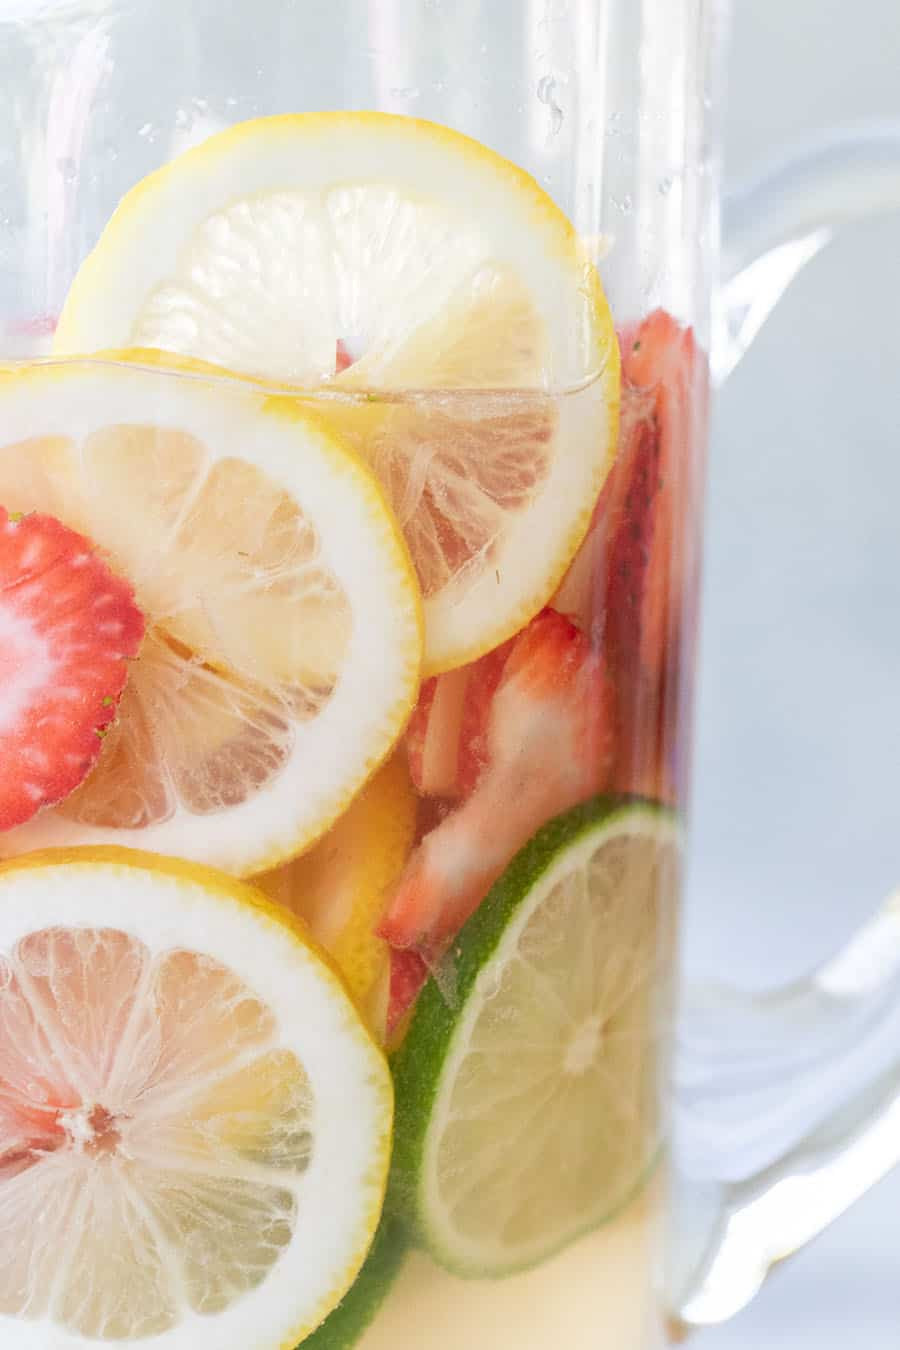 White wine sangria recipe with lemon and lime slices and strawberries.